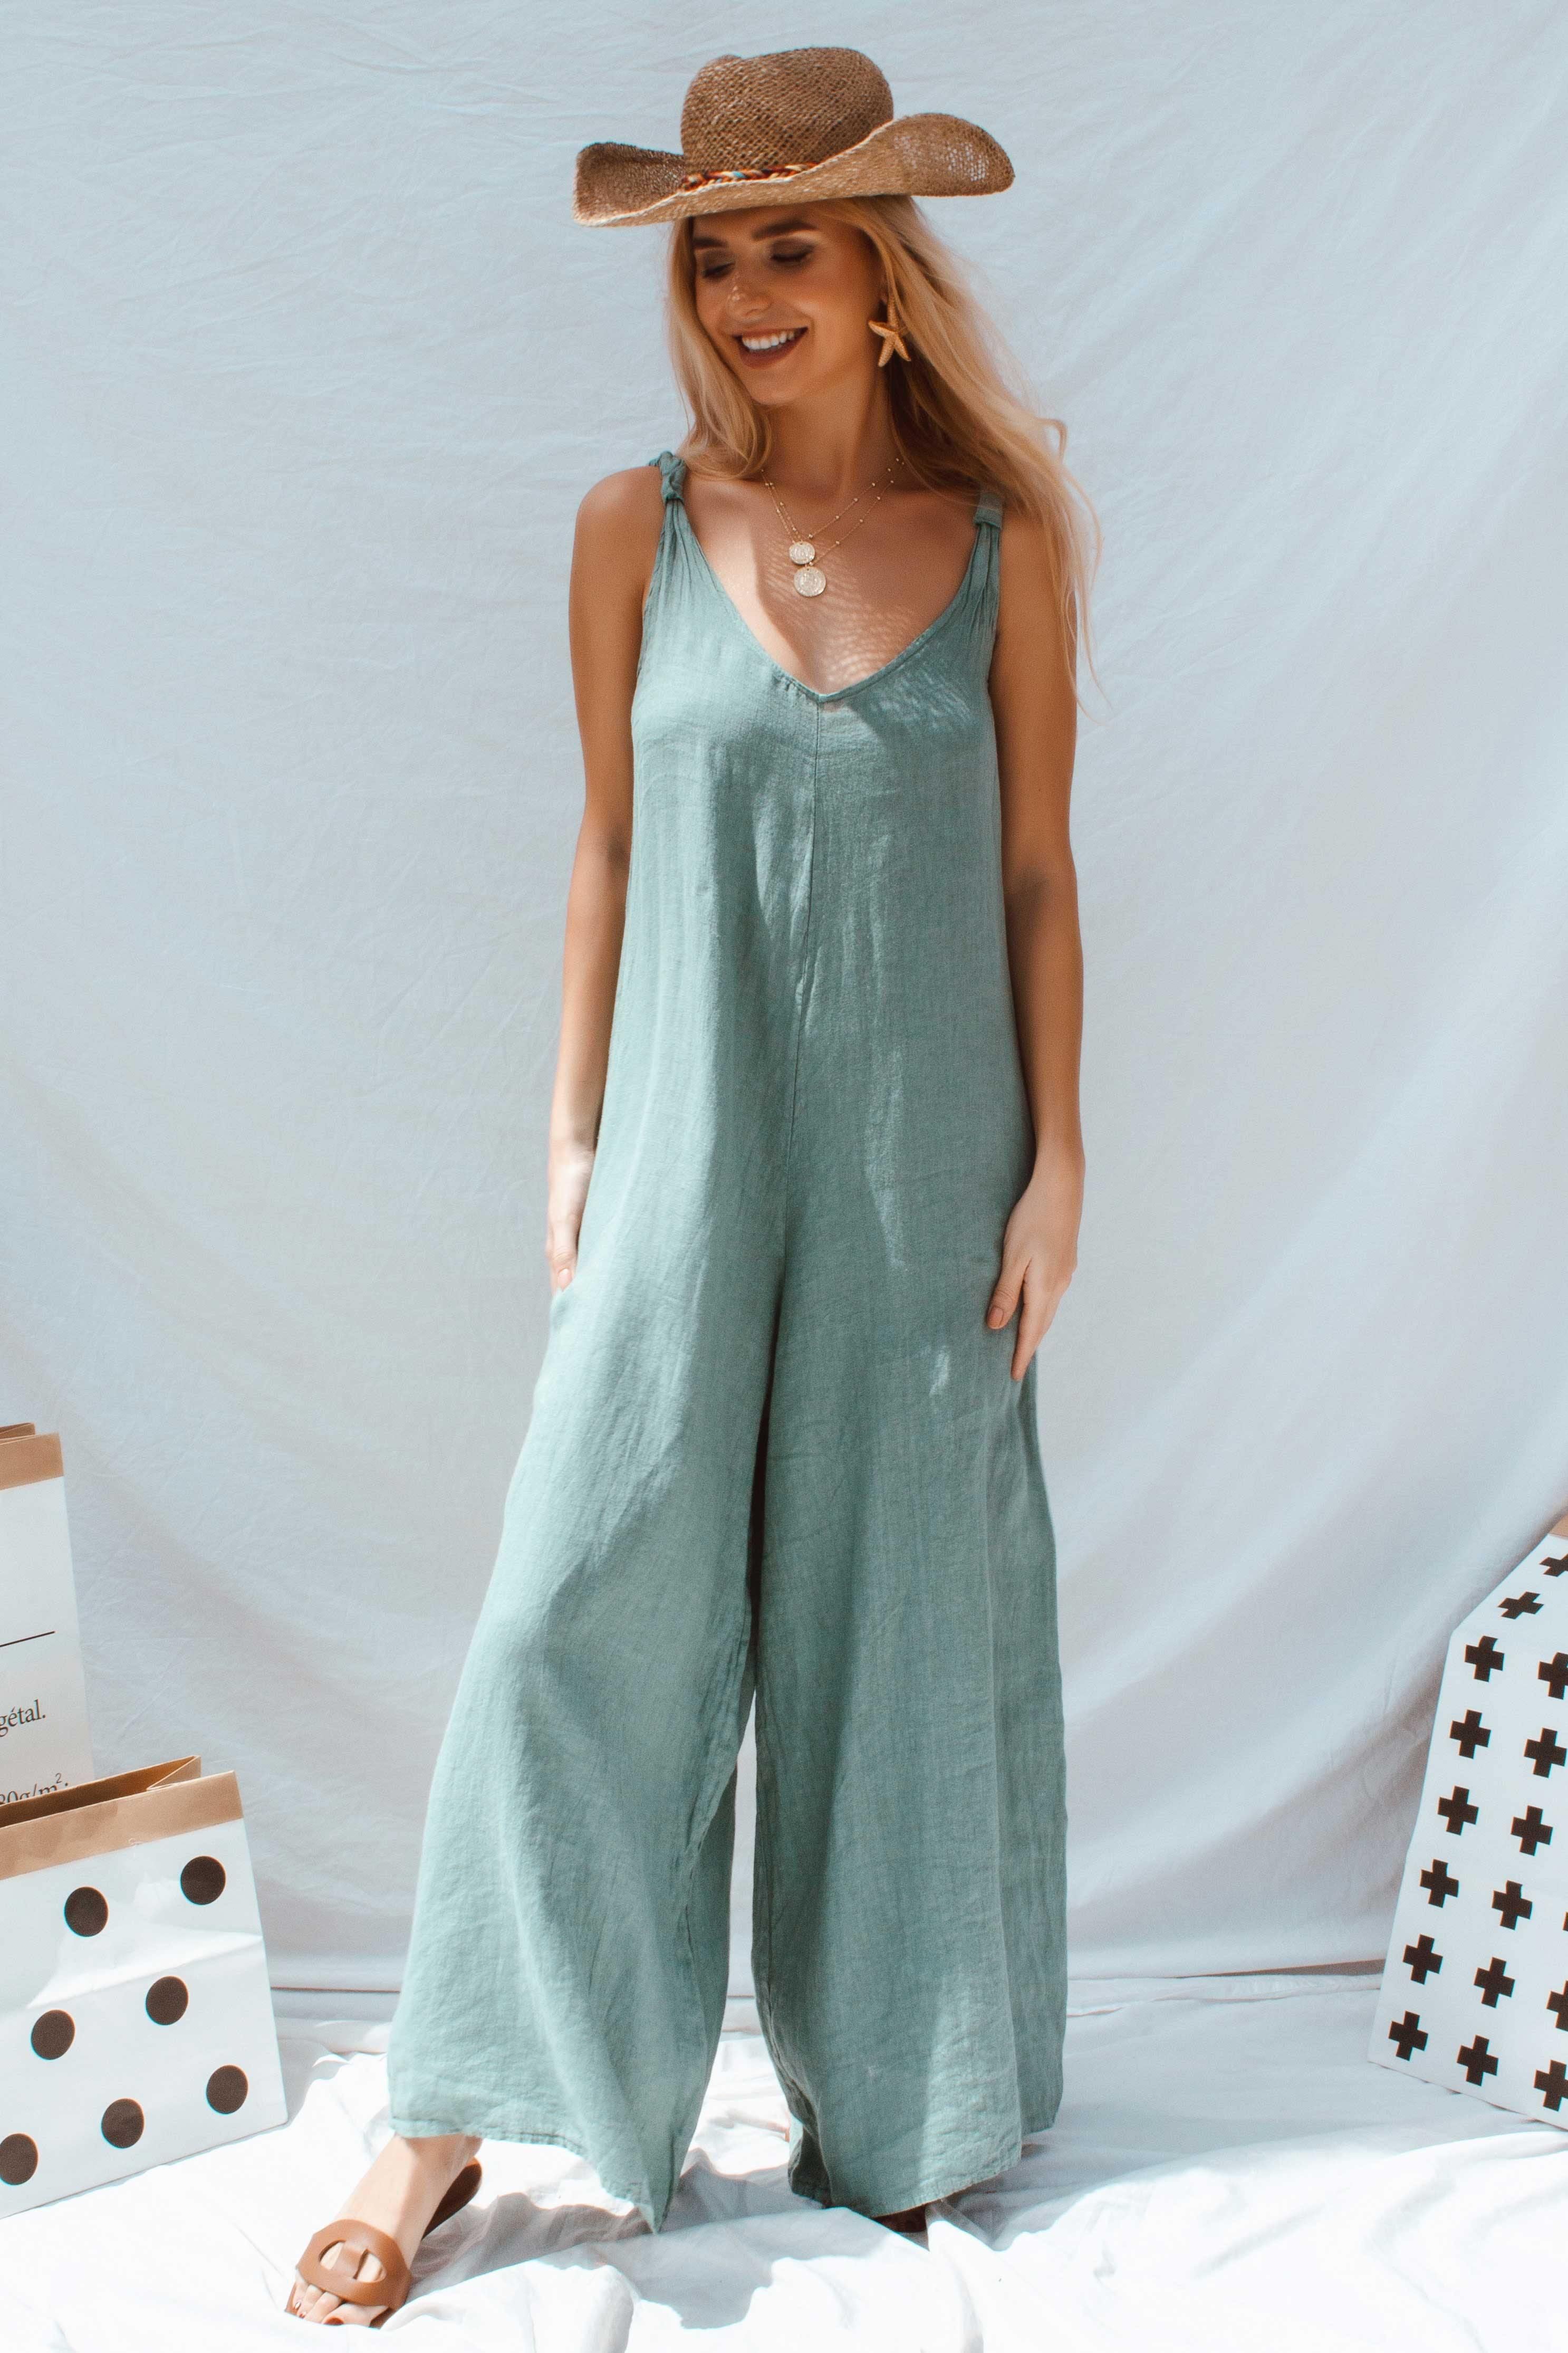 APOLLO JUMPSUIT IN GREEN | Women's Online Shopping | CHICLEFRIQUE